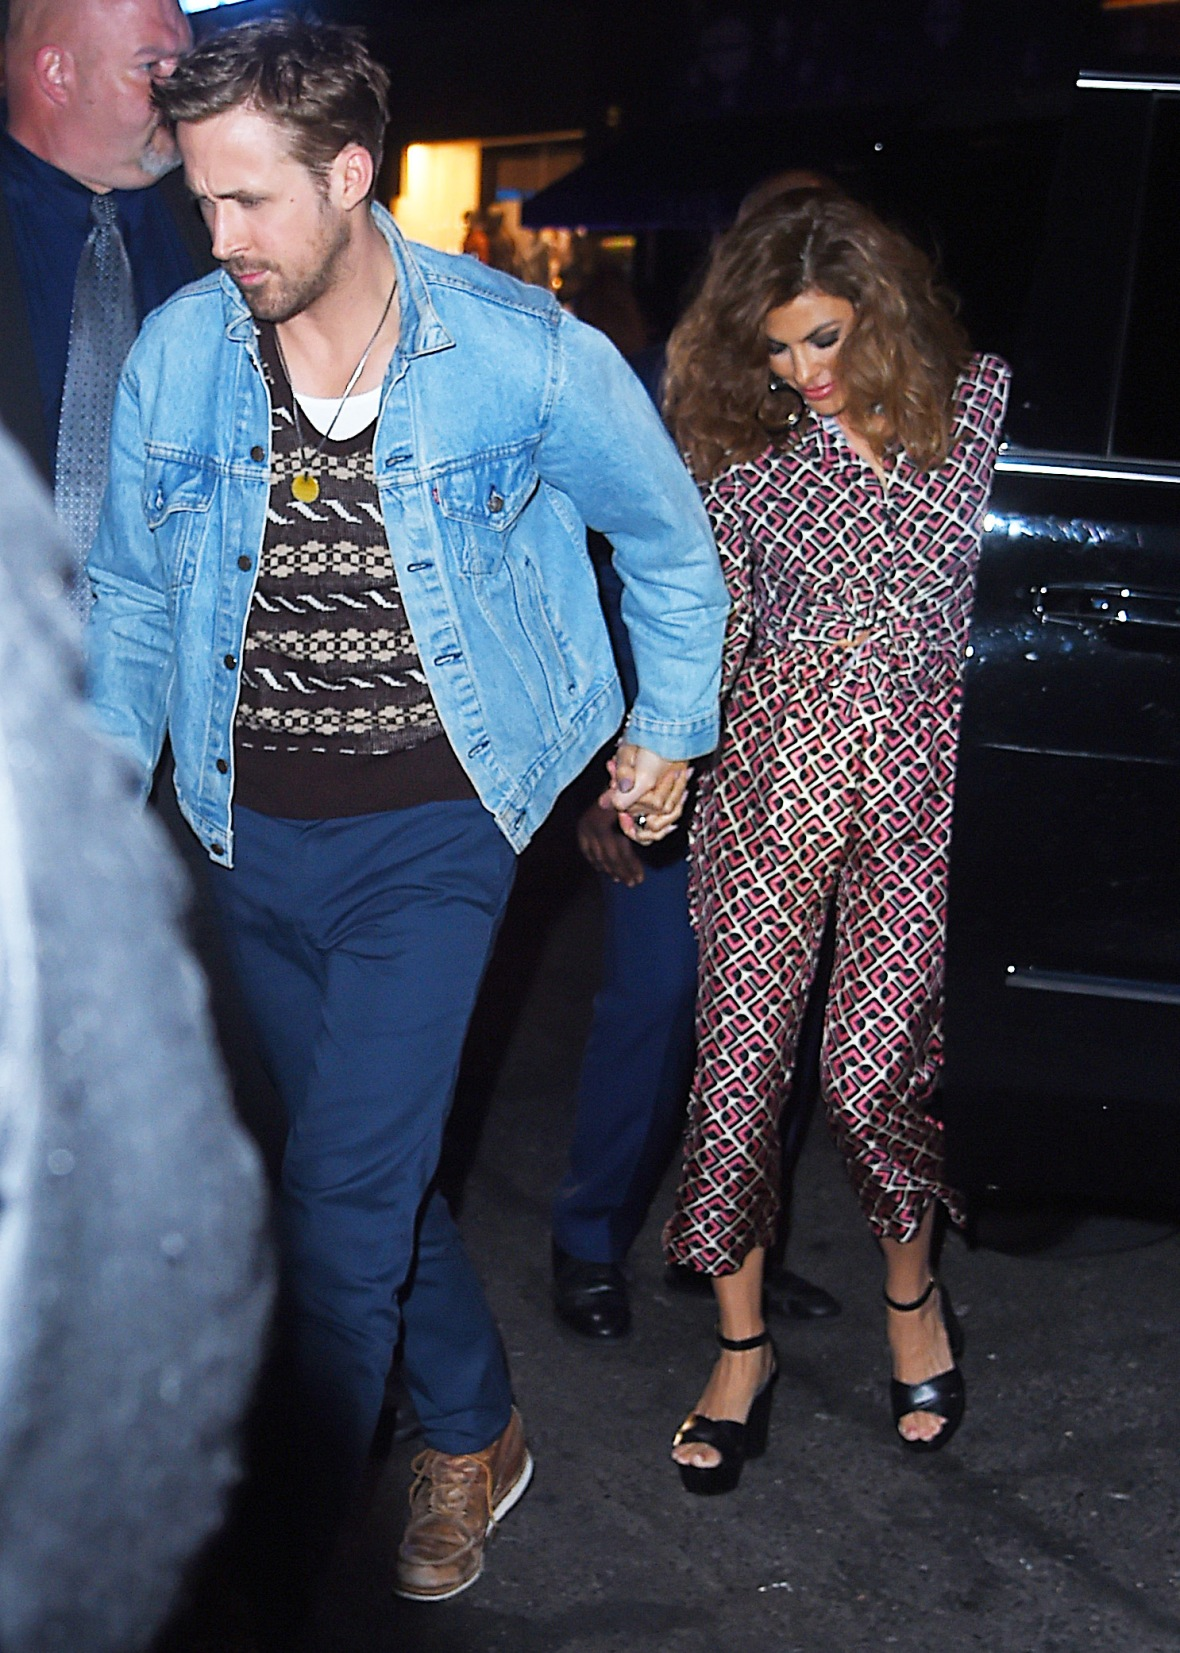 ryan gosling and eva mendes step out of a car together